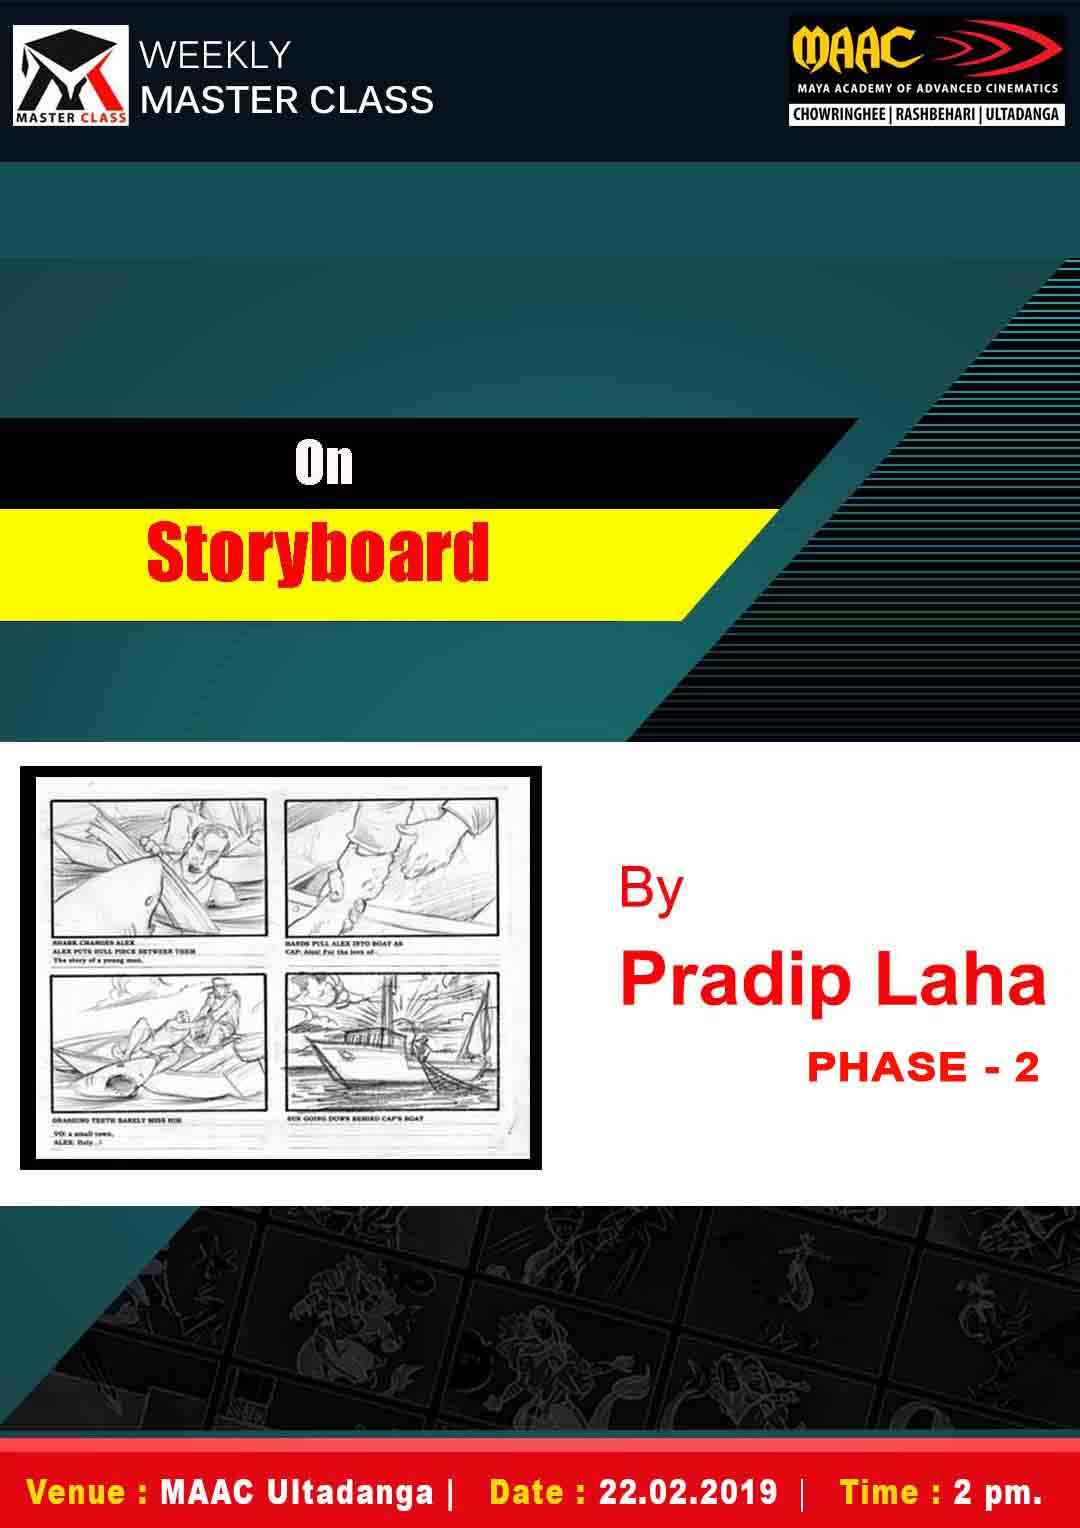 Weekly Master Class on Story Boarding Phase 2